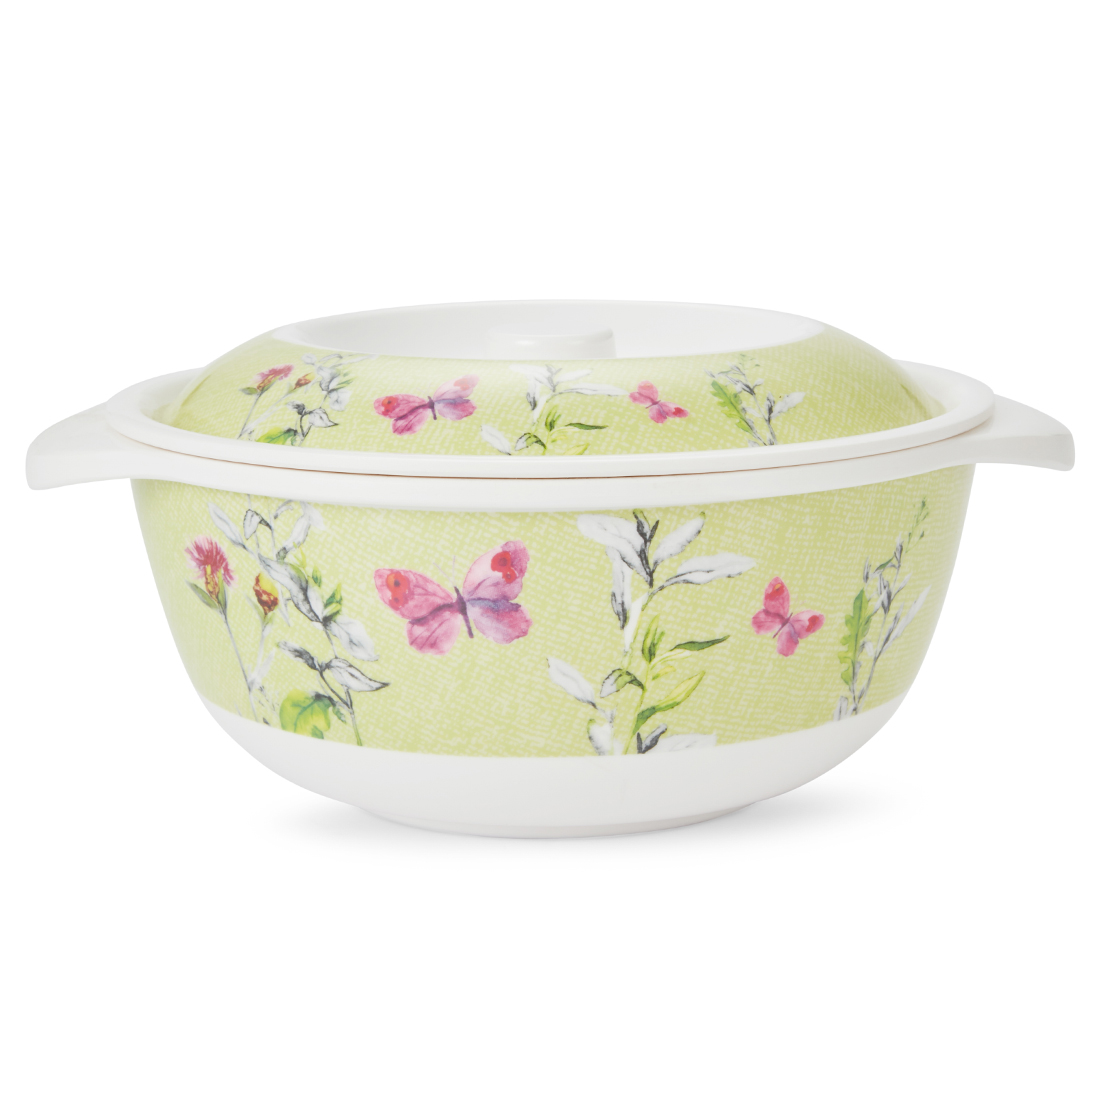 Aster Cassero With Lid Casseroles in Multicolour Colour by Living Essence